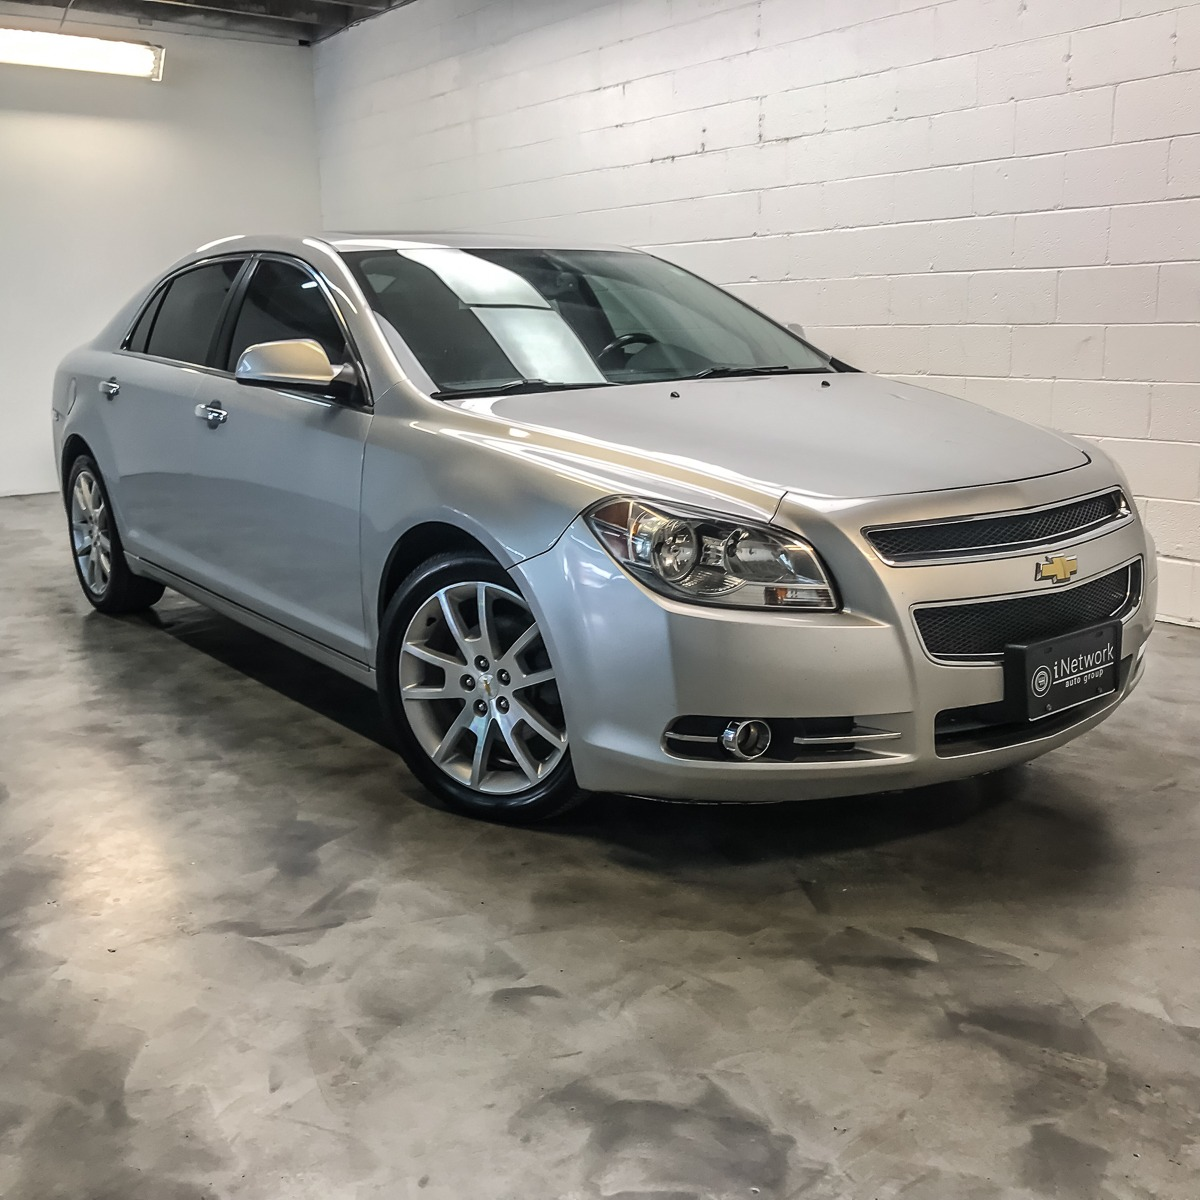 Used 2011 Chevrolet Malibu Ltz For Sale Special Pricing Inetwork Auto Group Stock T399380